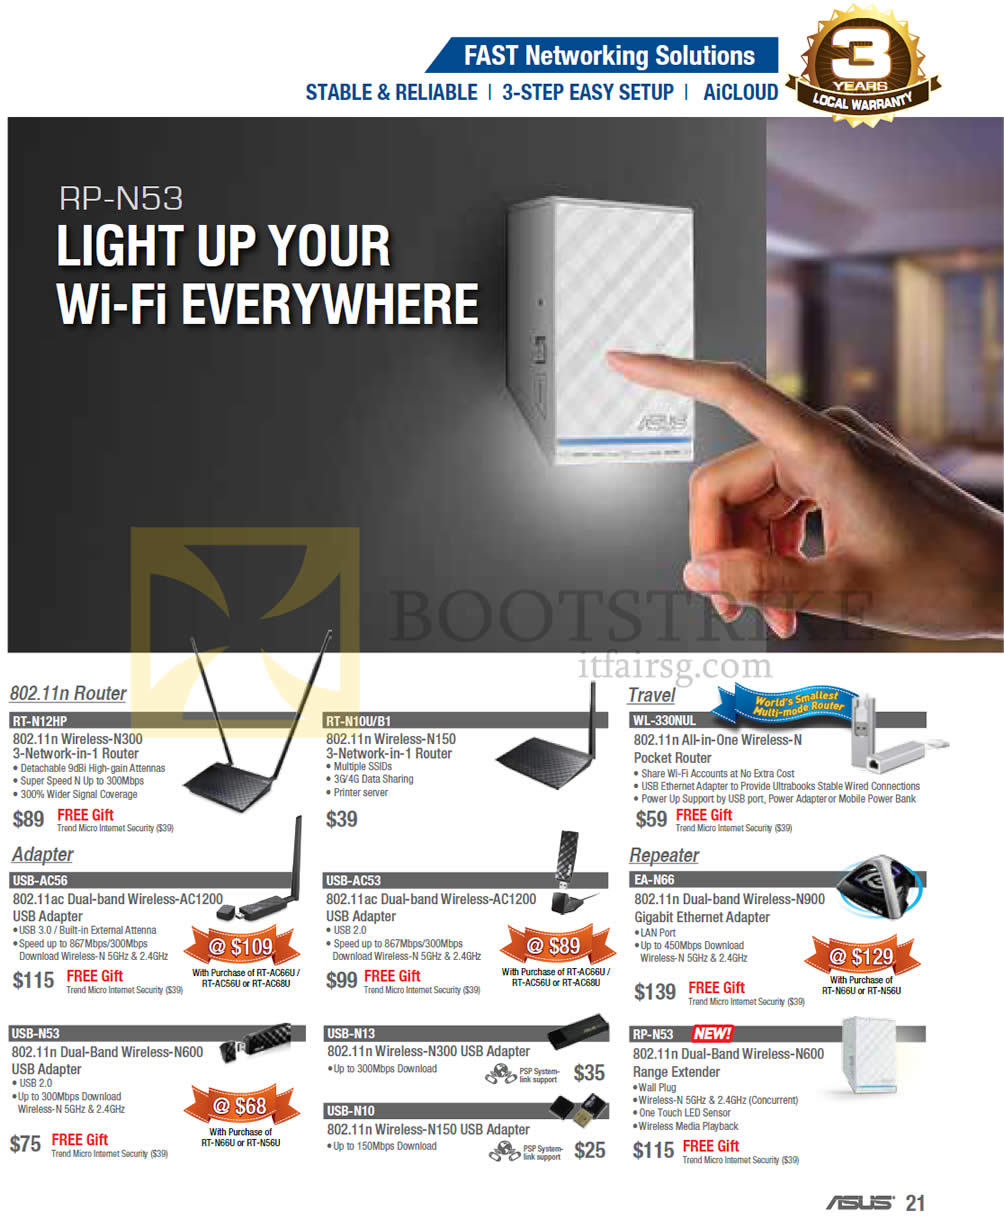 COMEX 2013 price list image brochure of ASUS Networking Routers, Adapters, Repeaters RT-N12HP, RT-N10U B1, WL-330NUL, USB-AC56 AC53, EA-N66, USB N53-N13 N10, RP-N53